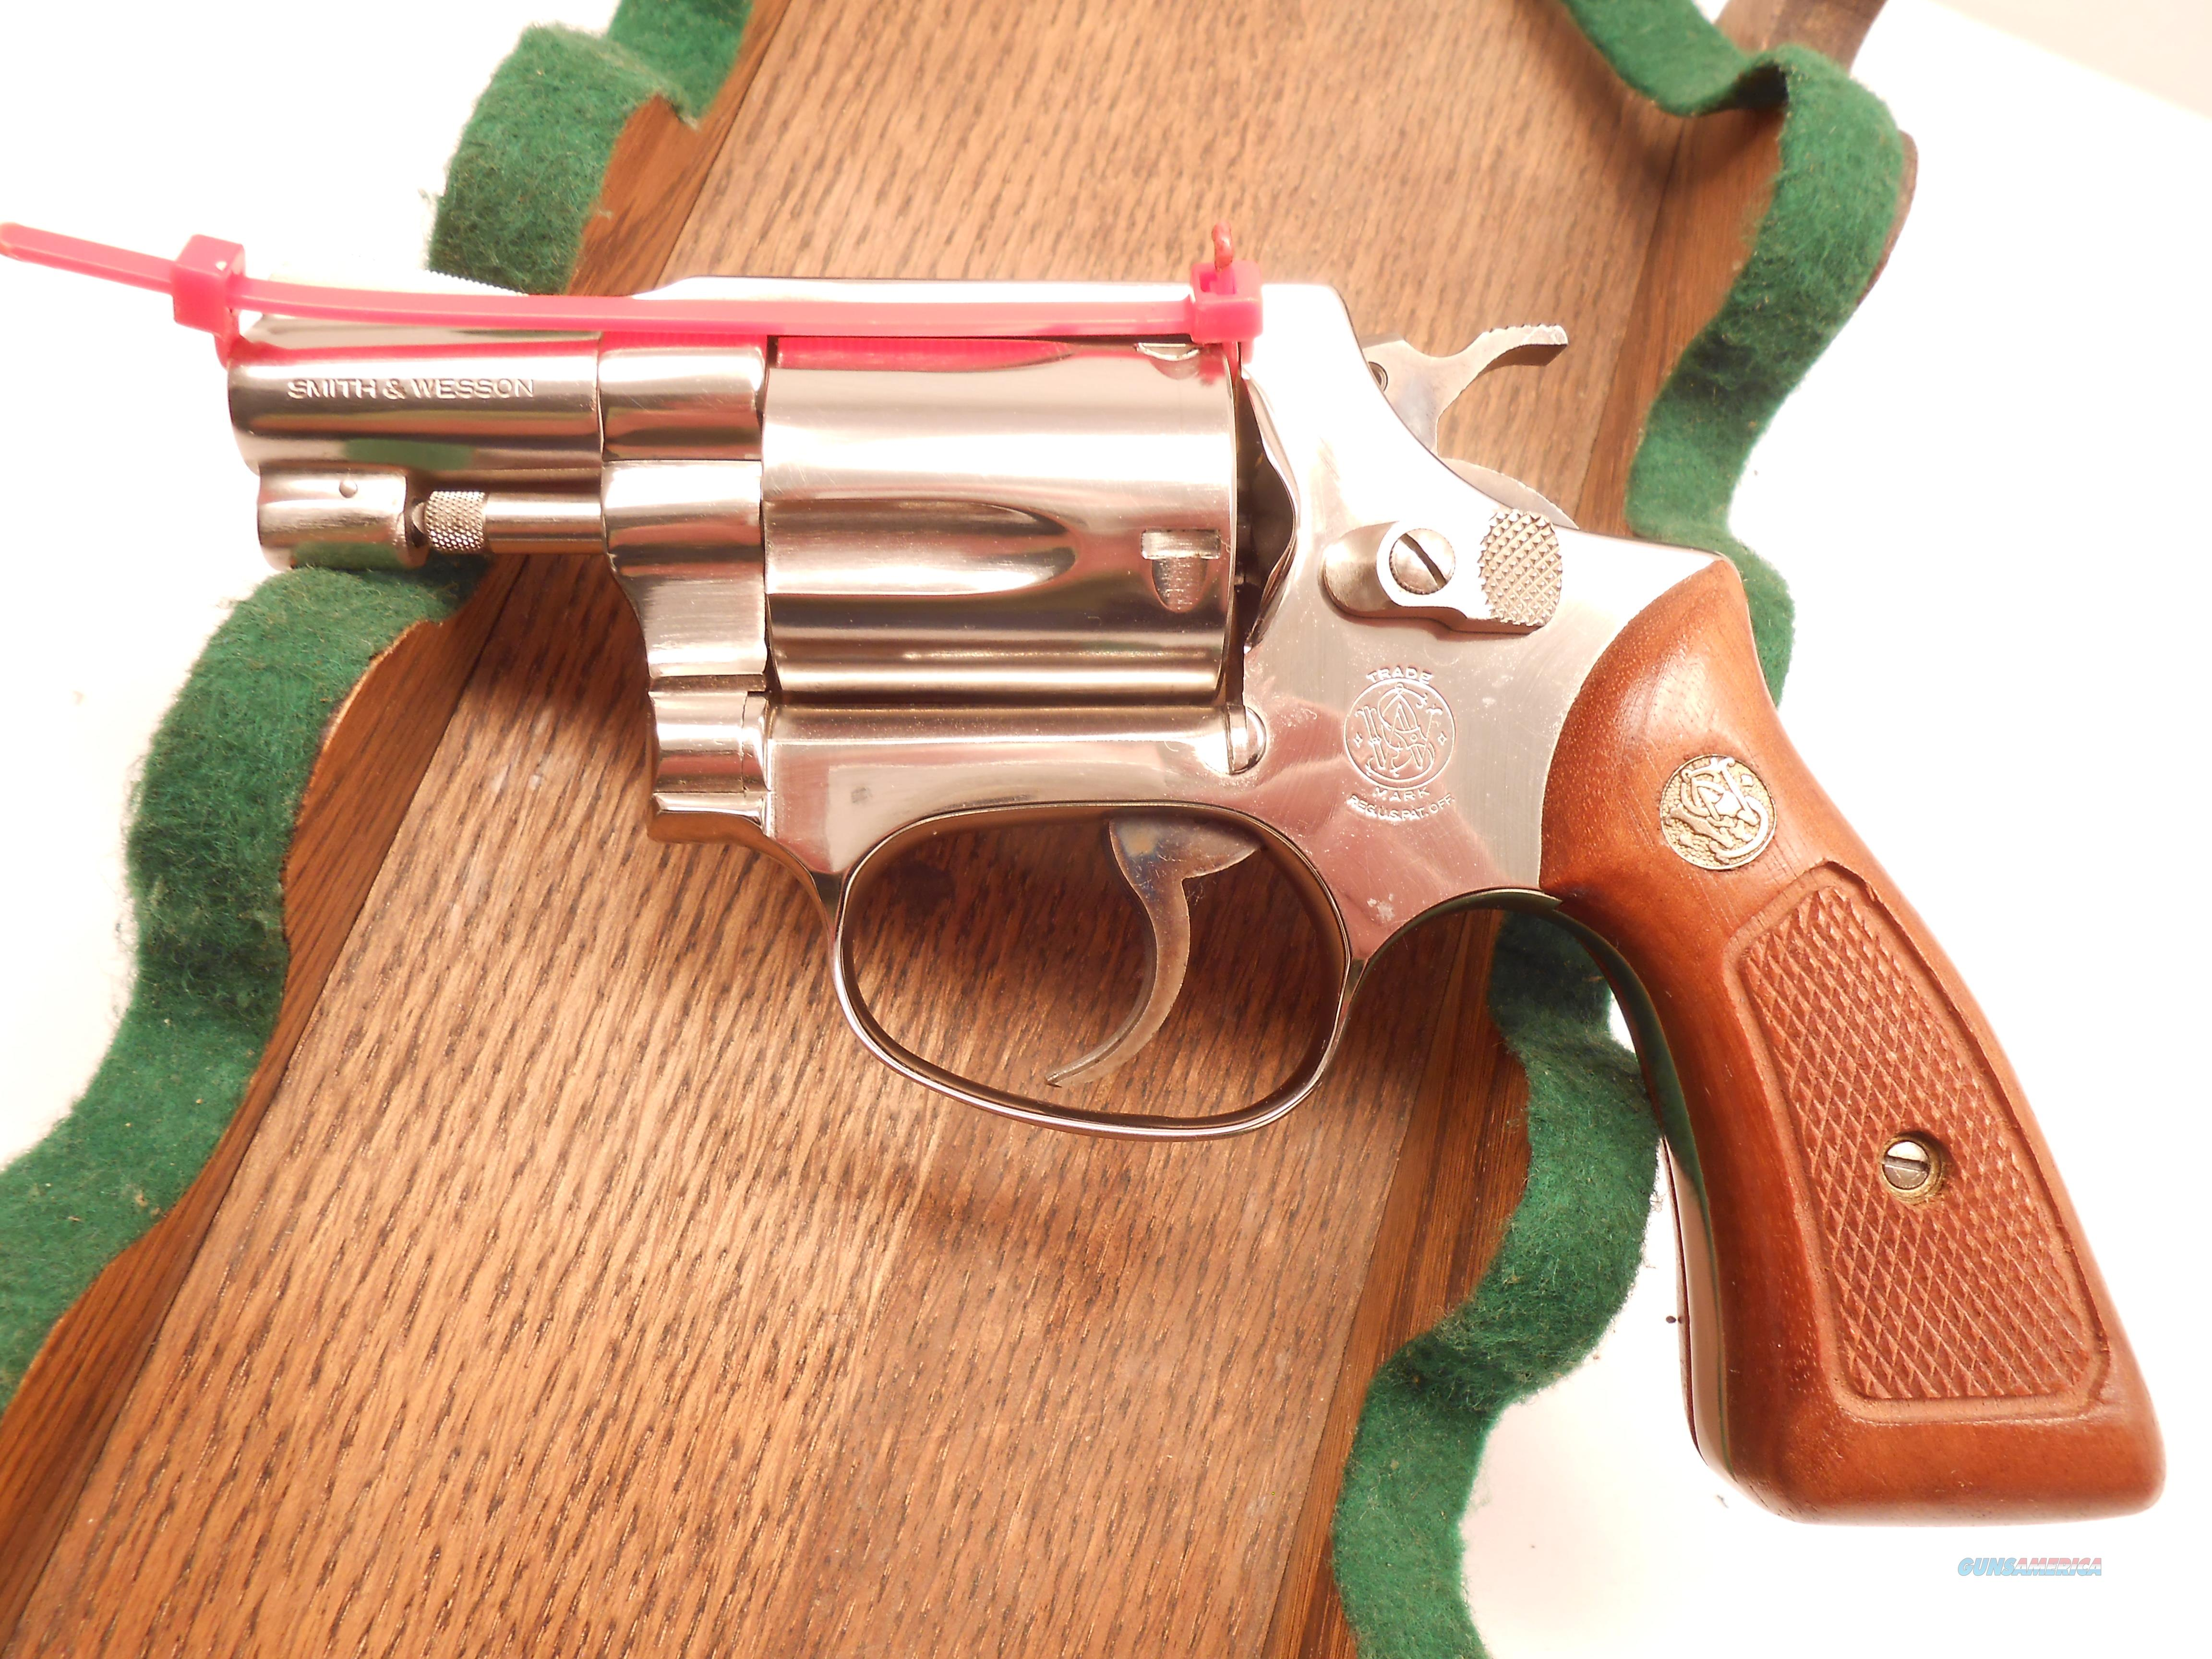 Like New Unfired Smith & Wesson Model 37 Airwieght with Factory Box and Papers  Guns > Pistols > Smith & Wesson Revolvers > Pocket Pistols